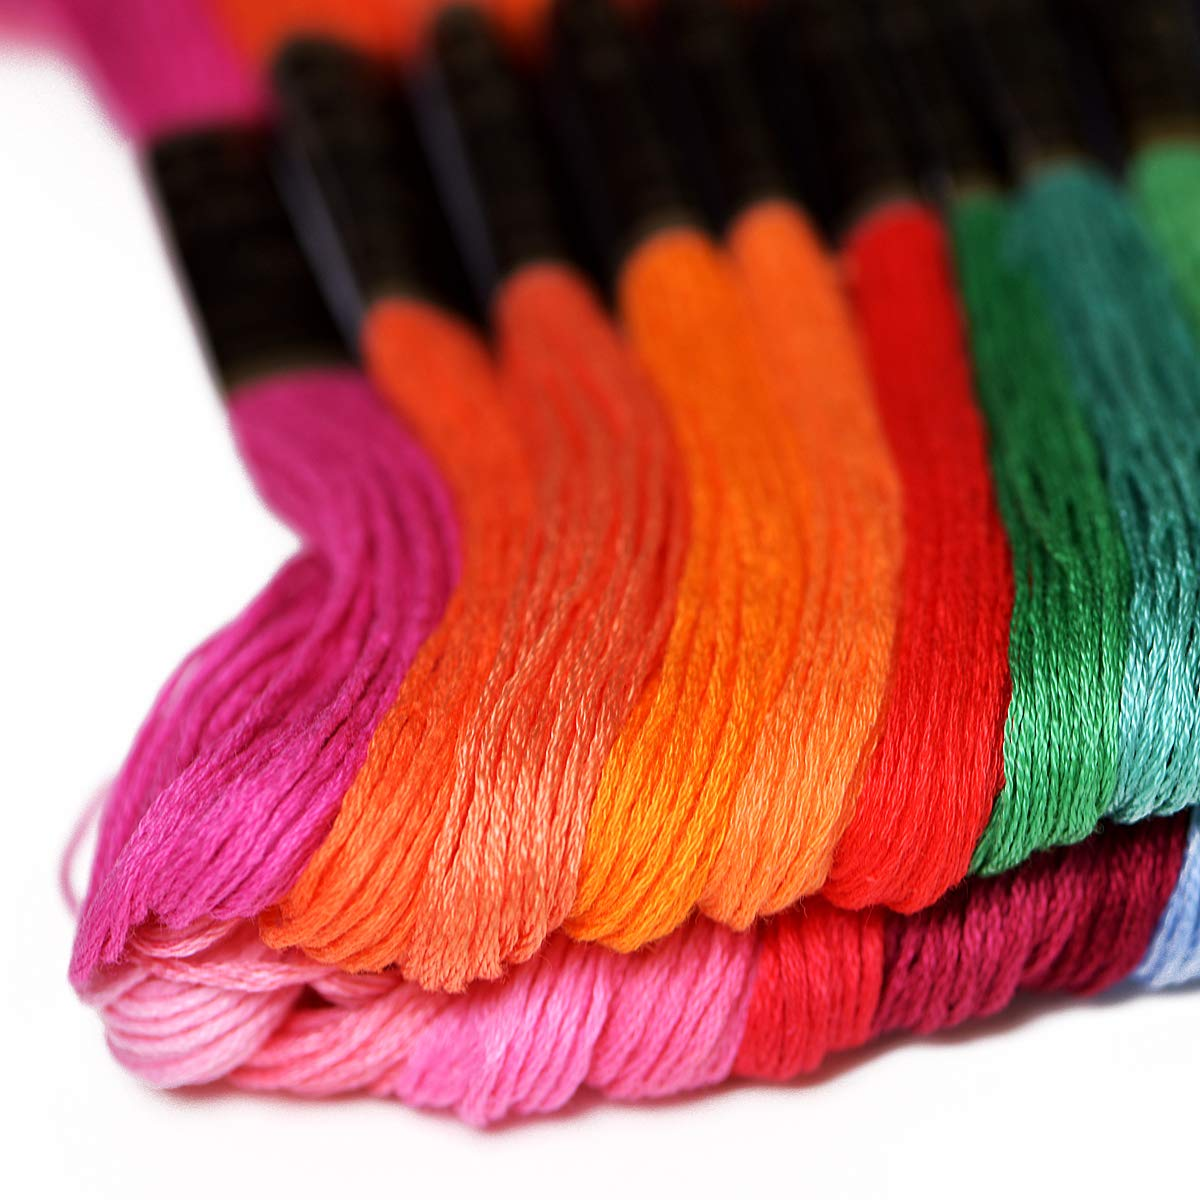 50 Skeins Per Pack /& Free Set of Embroidery Needles and Floss Bobbins Premium Rainbow Color Embroidery Floss with DMC Color Number-Cross Stitch Threads-Friendship Bracelets Floss-Crafts Floss